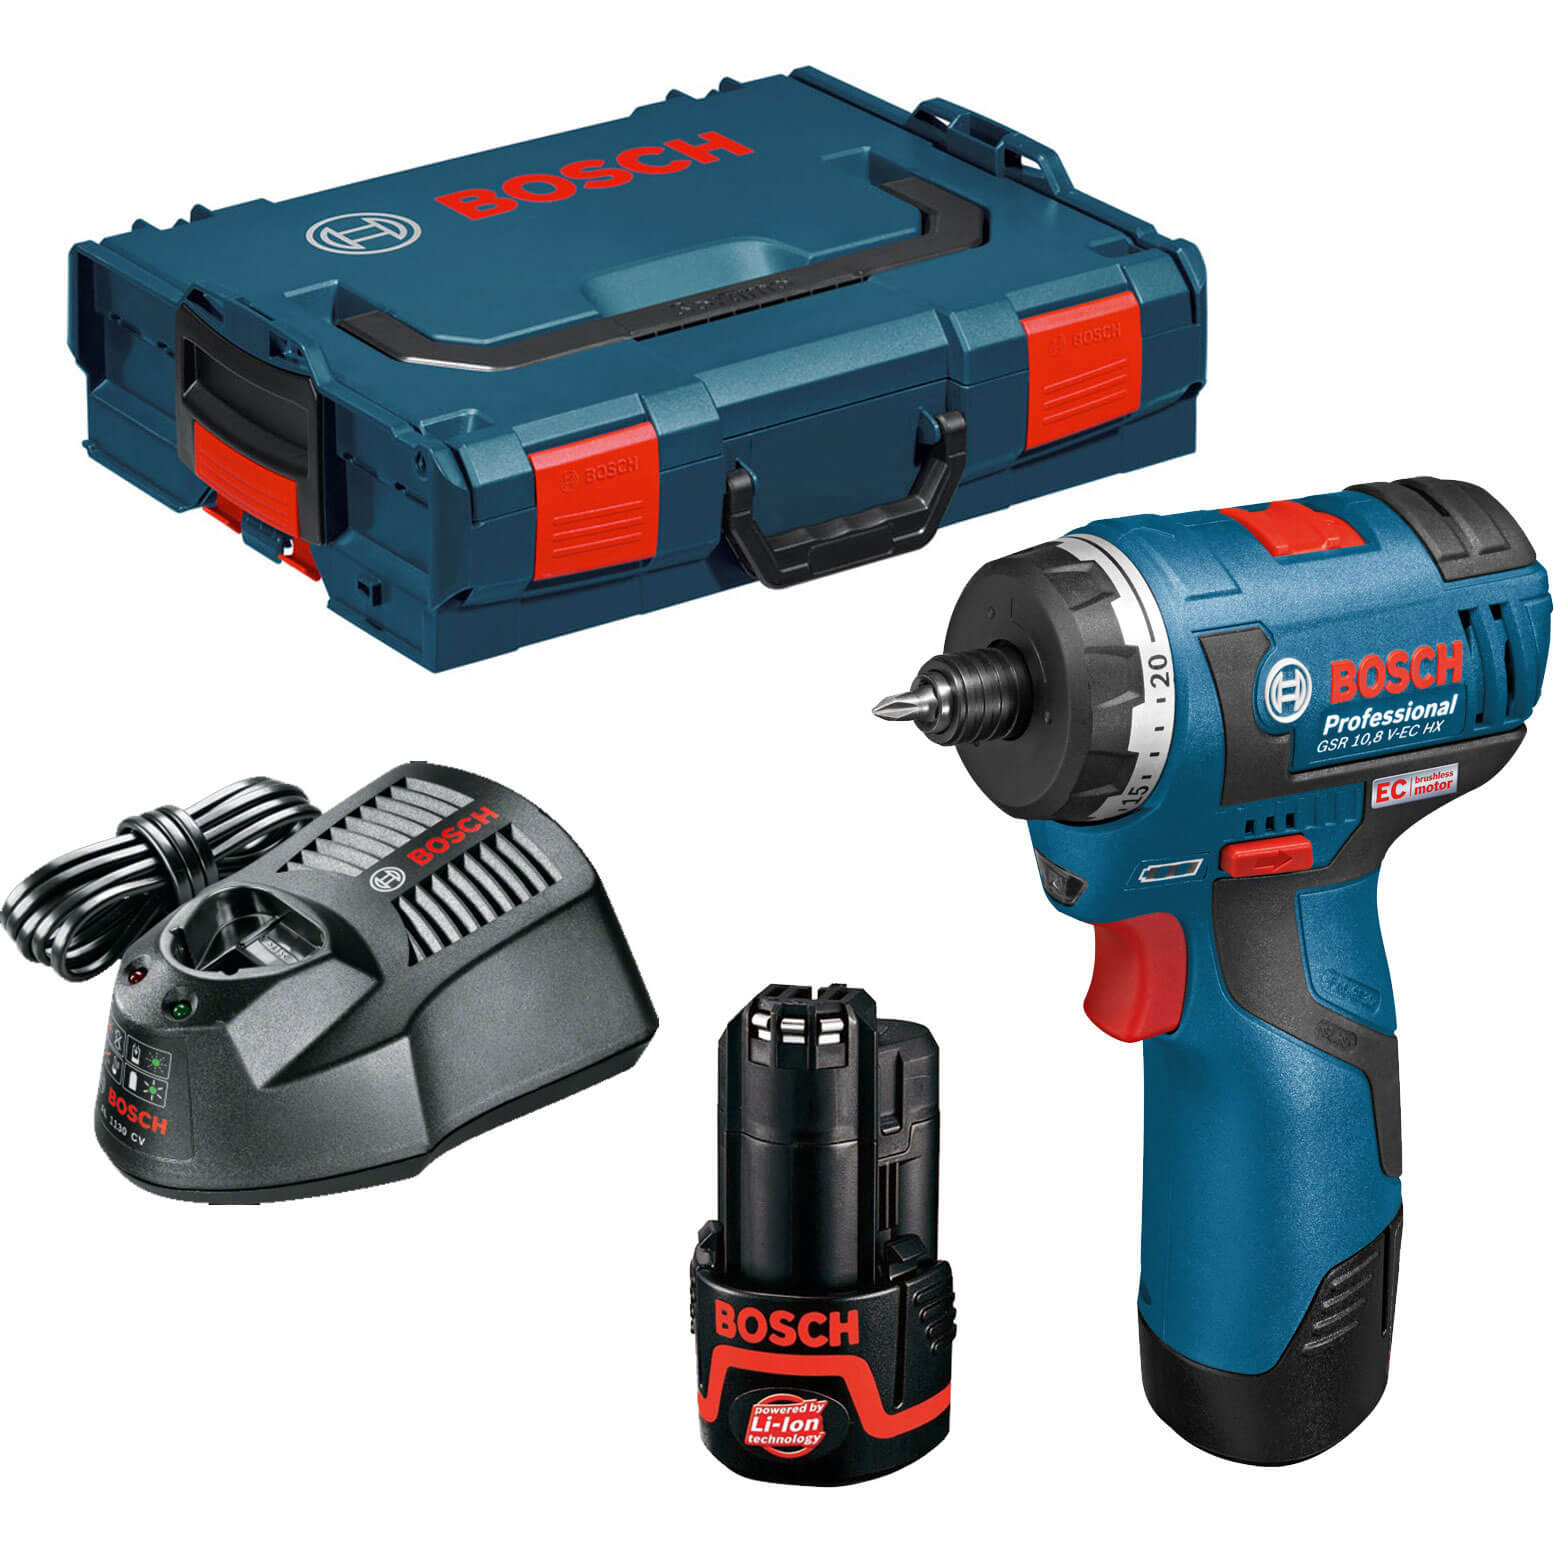 bosch gsr 10 8 v ec hx cordless brushless drill. Black Bedroom Furniture Sets. Home Design Ideas